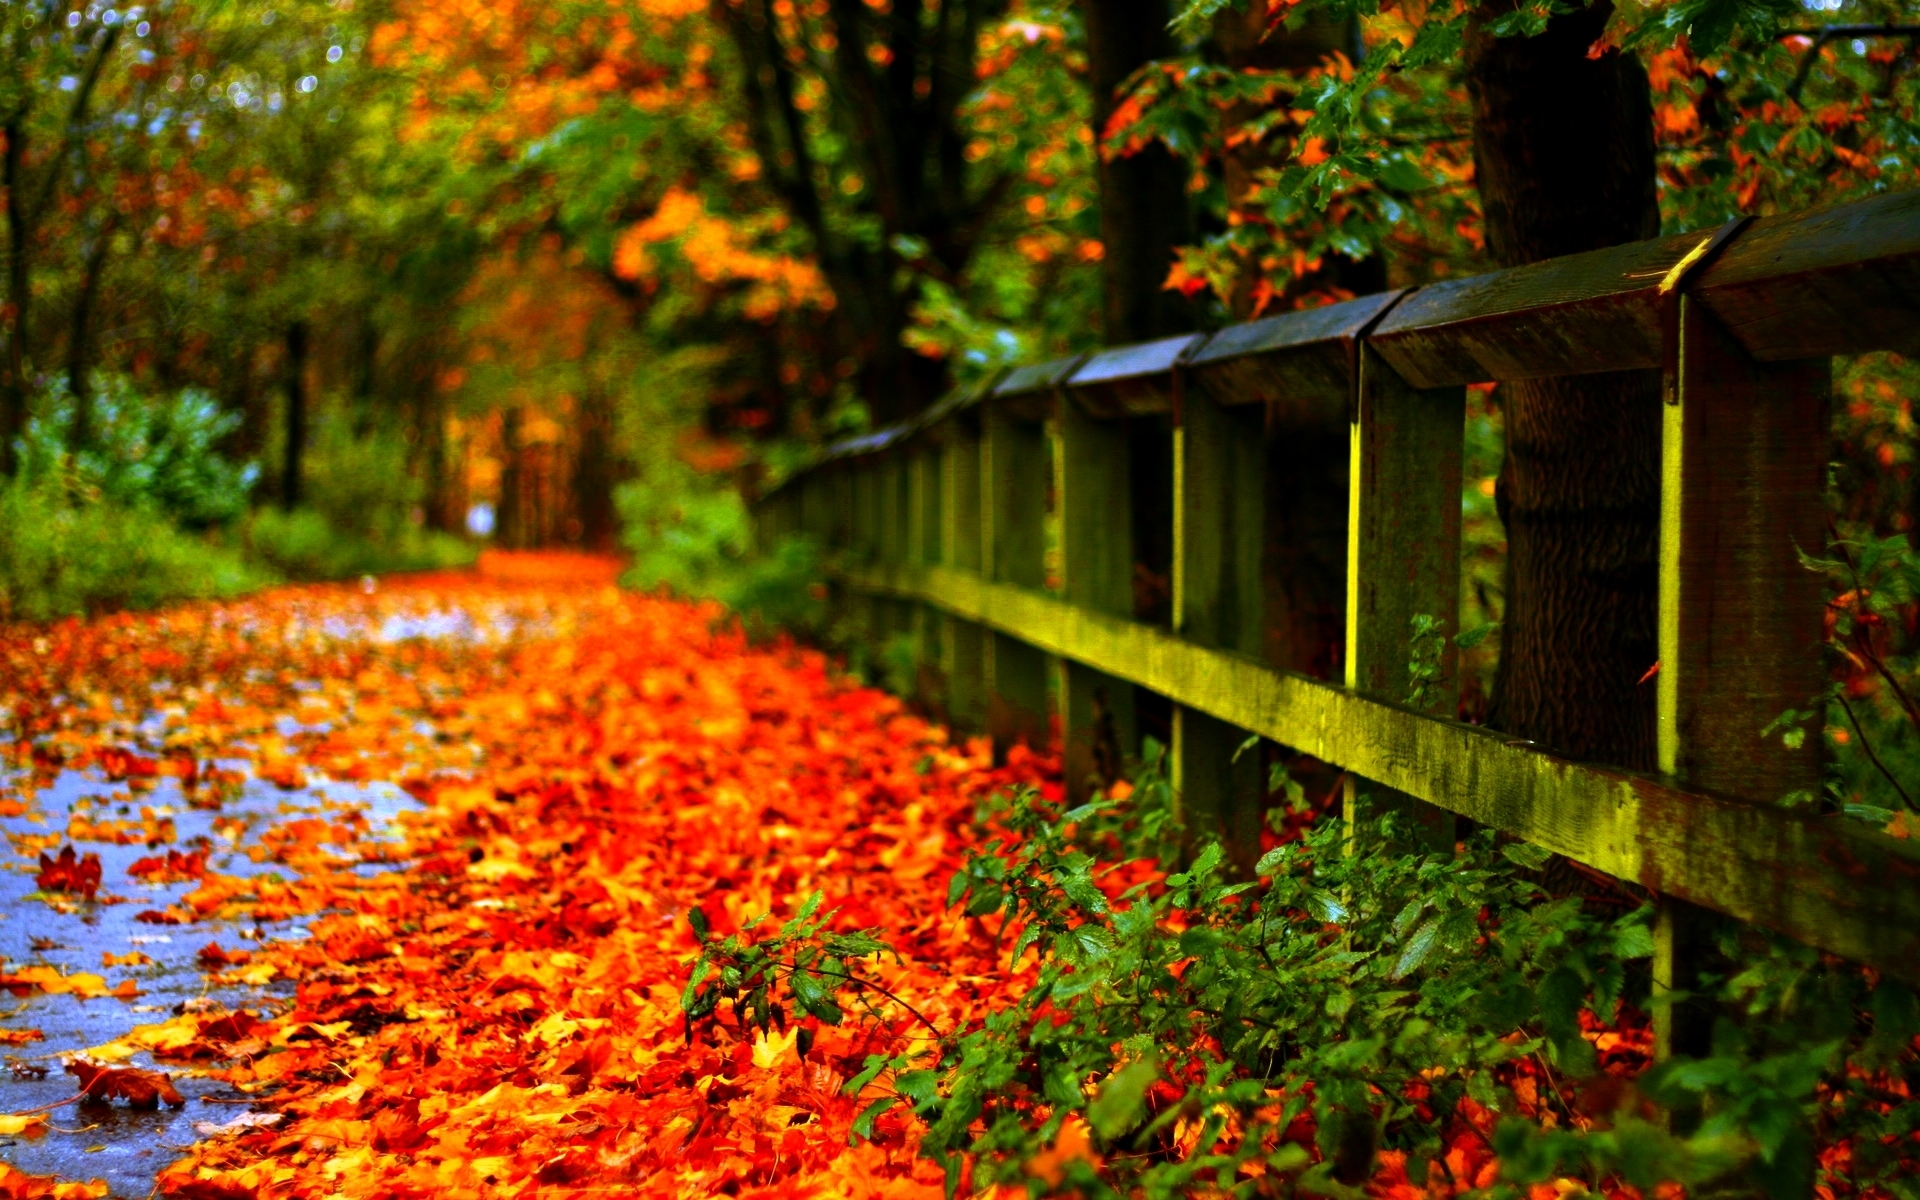 fall foliage wallpapers hd | pixelstalk